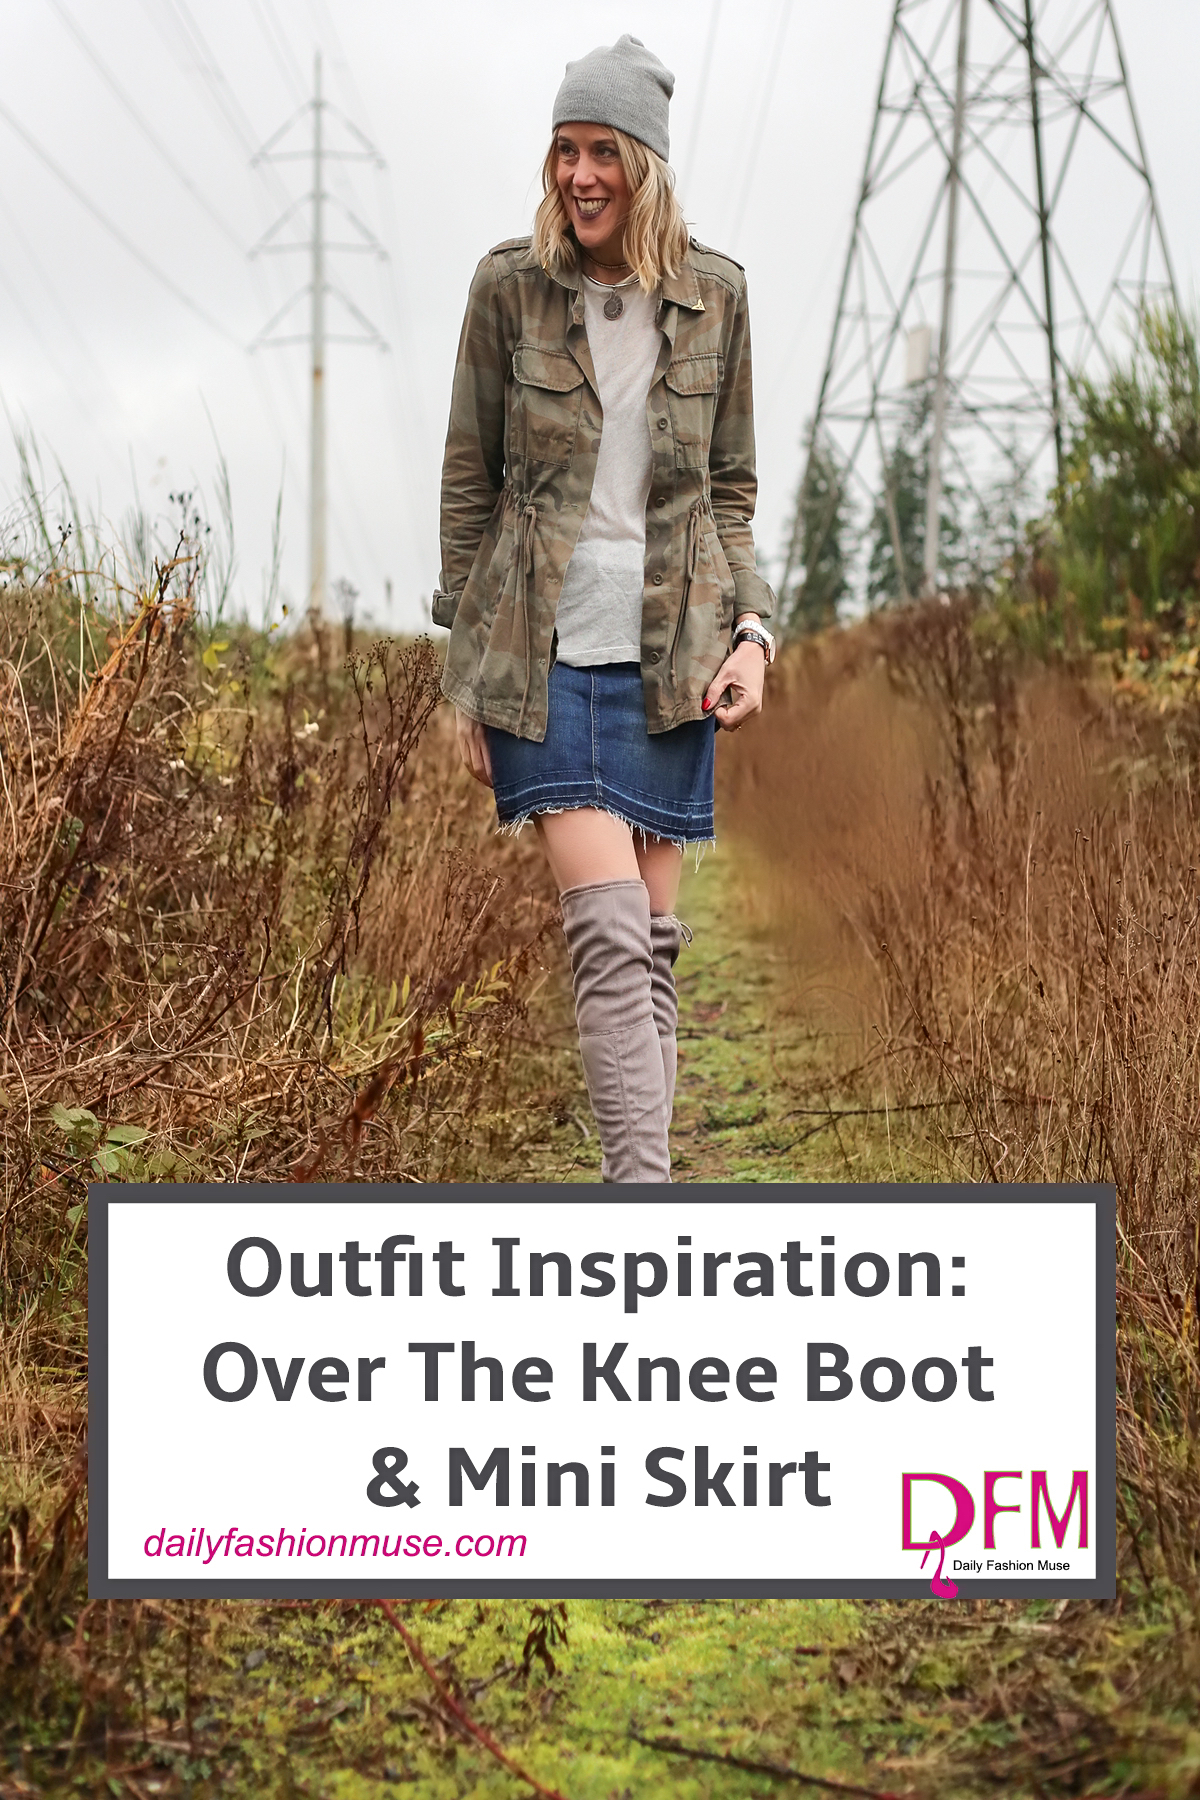 OTK Boots also known as over the knee boots are one of my favorite winter shoe options. They allow you to wear something other than jeans during cold months